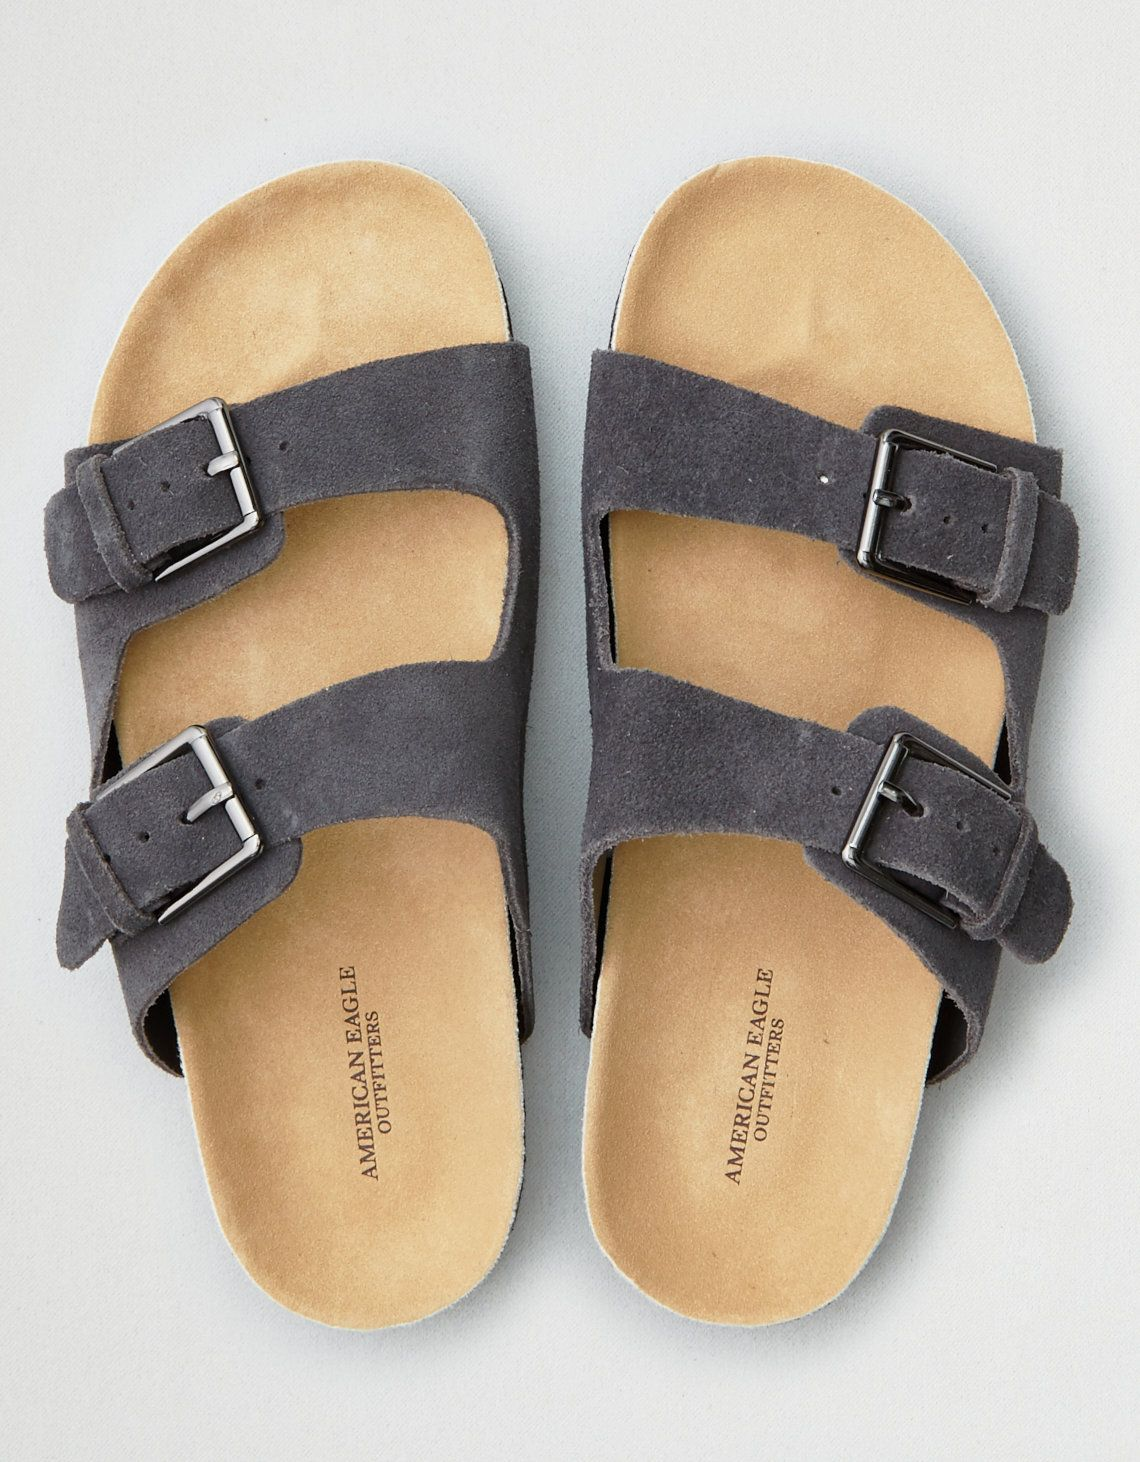 AEO Double Buckle Sandal | Brown leather sandals, Brown